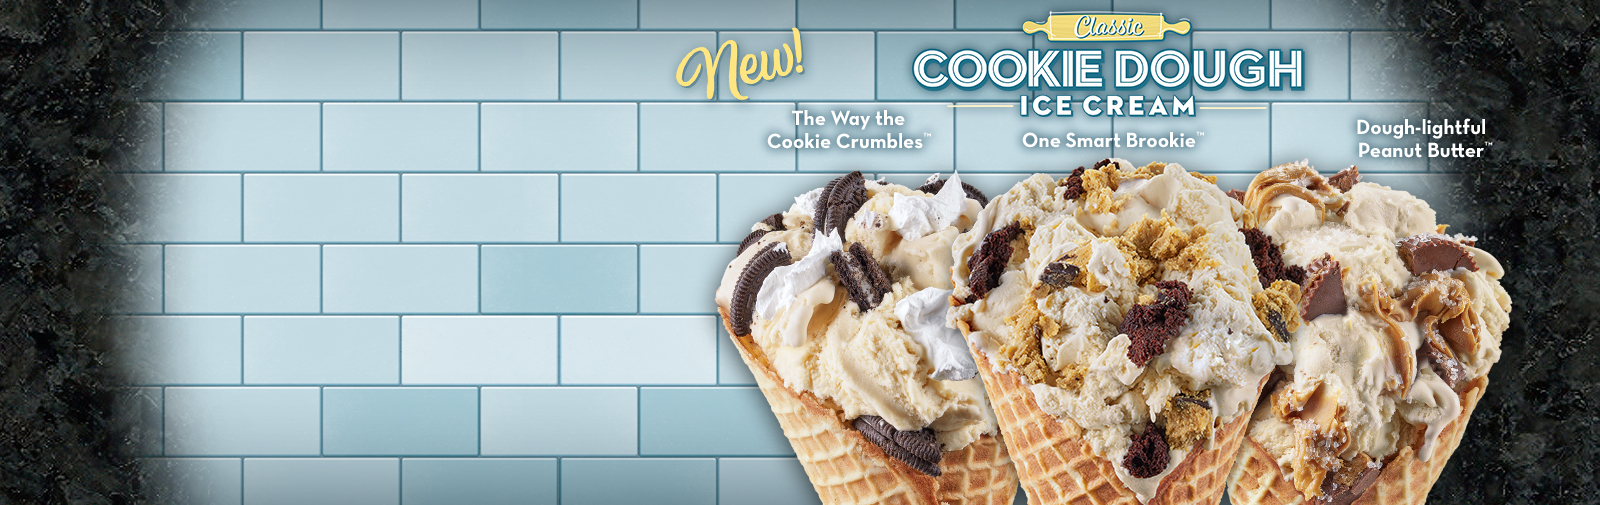 Try our Classic Cookie Dough Ice Cream Creations™ with three new, delicious takes on cookie dough flavors.